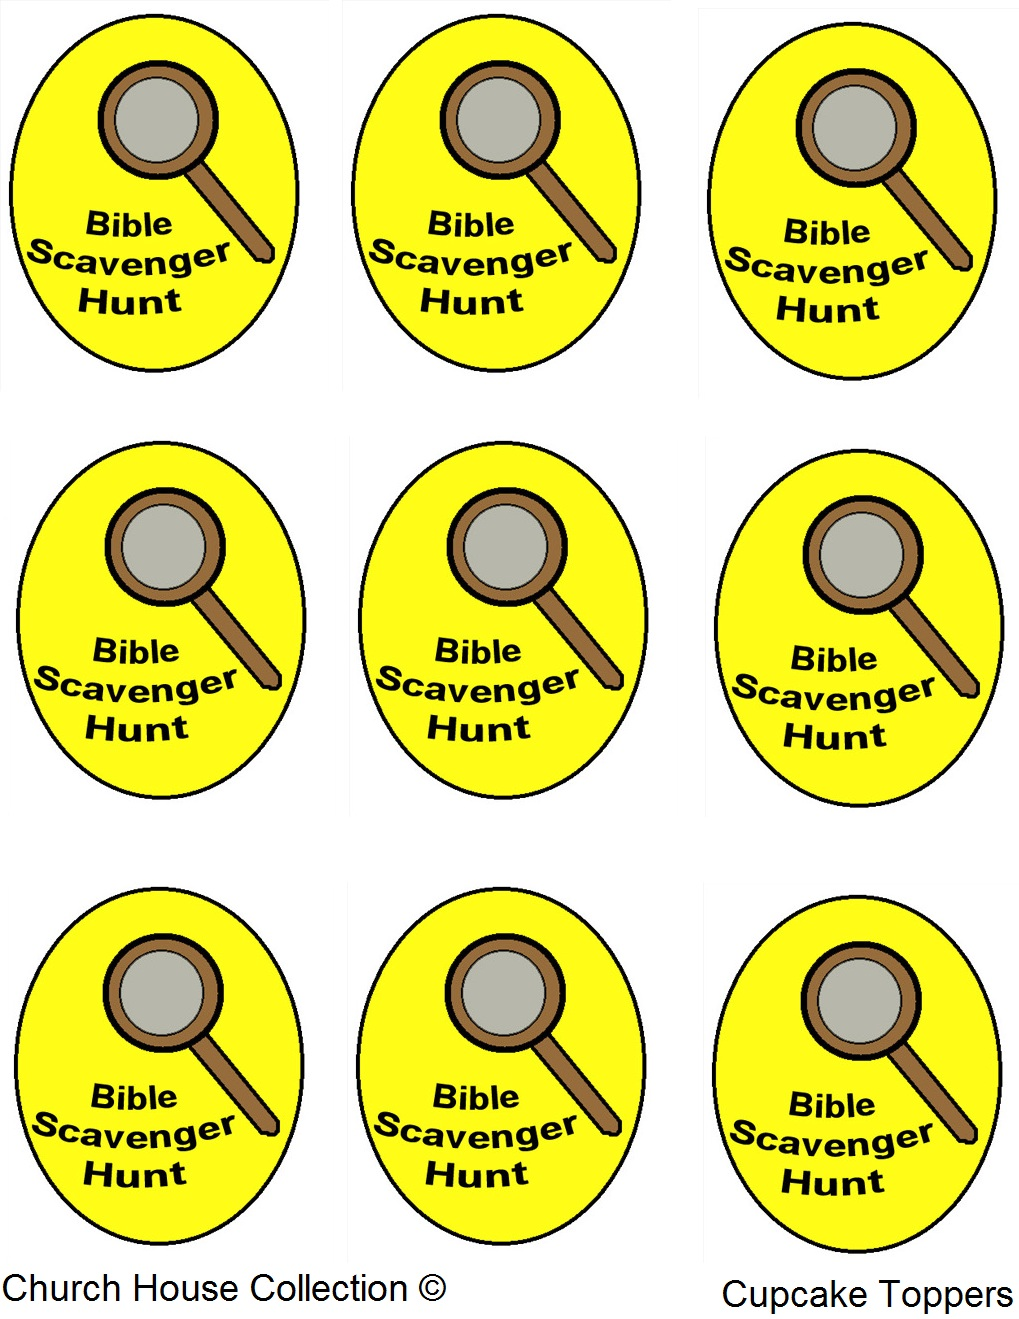 Worksheets Bible Scavenger Hunt Worksheet church house collection blog bible scavenger hunt cupcakes hunt